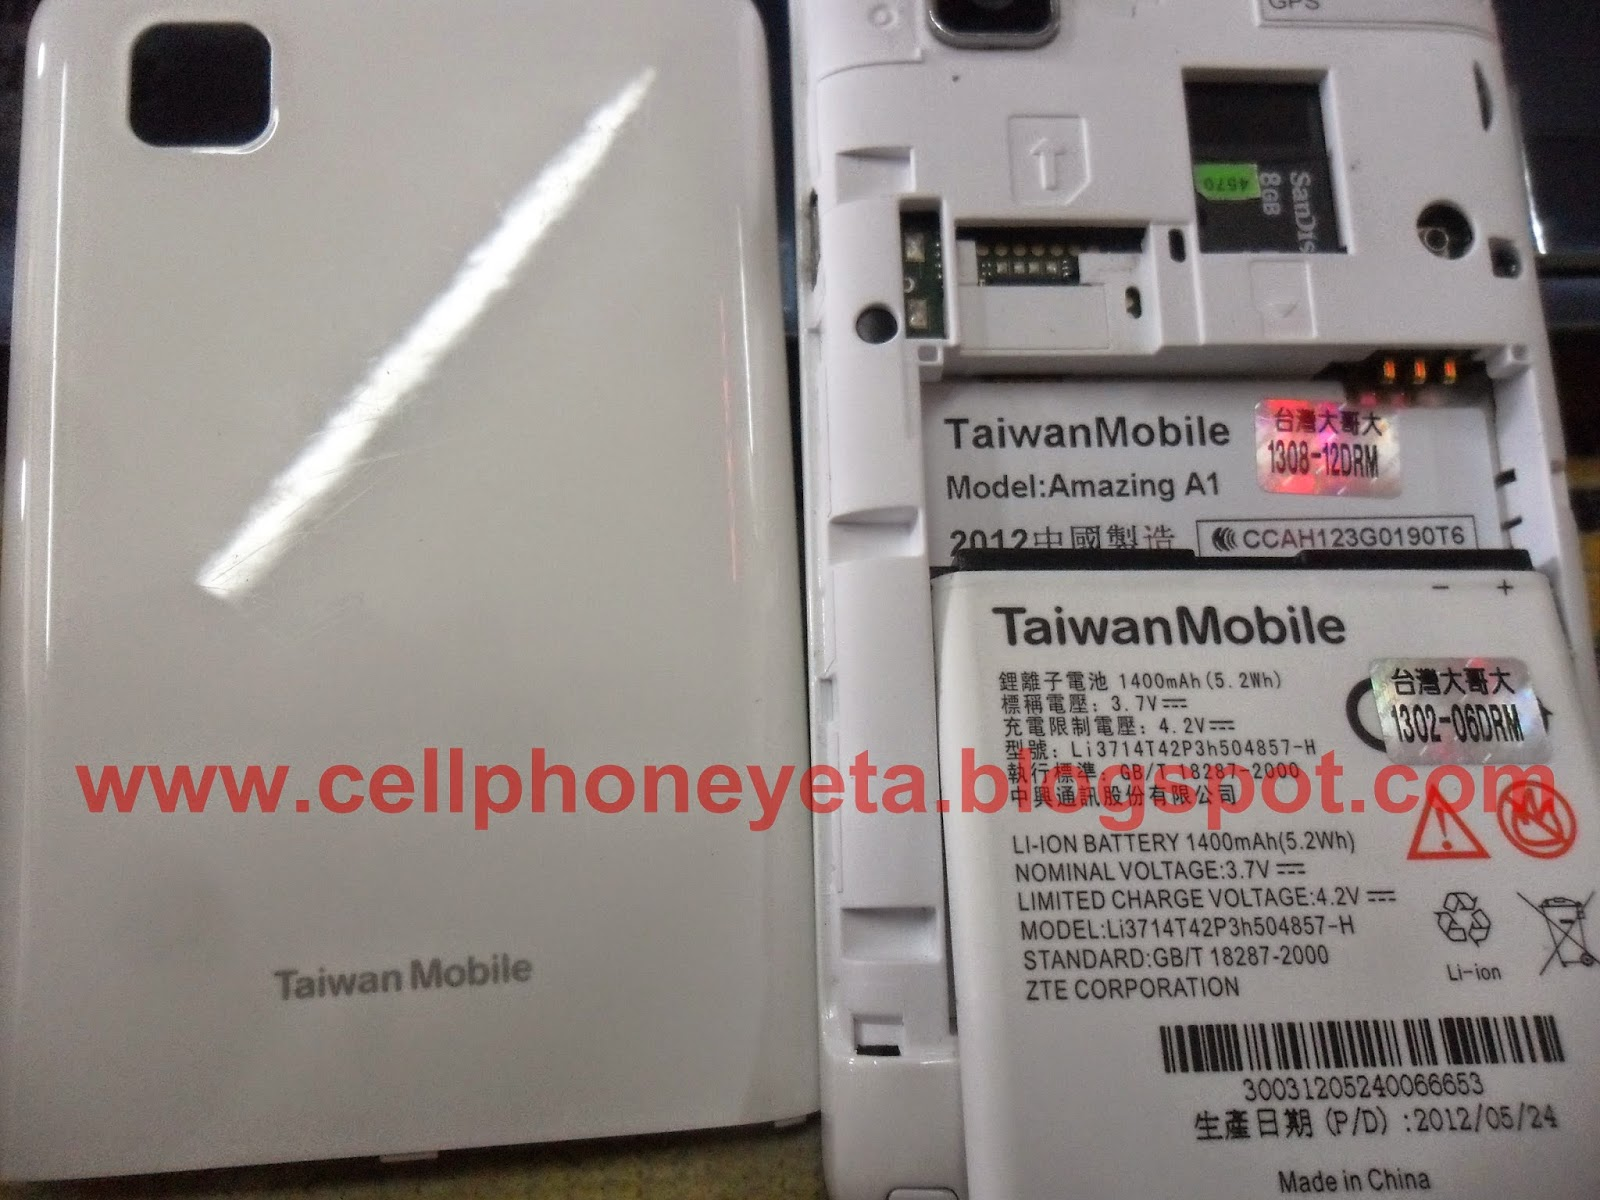 How To Hard Reset Taiwan Mobile Amazing A1 - Cellphoneyeta